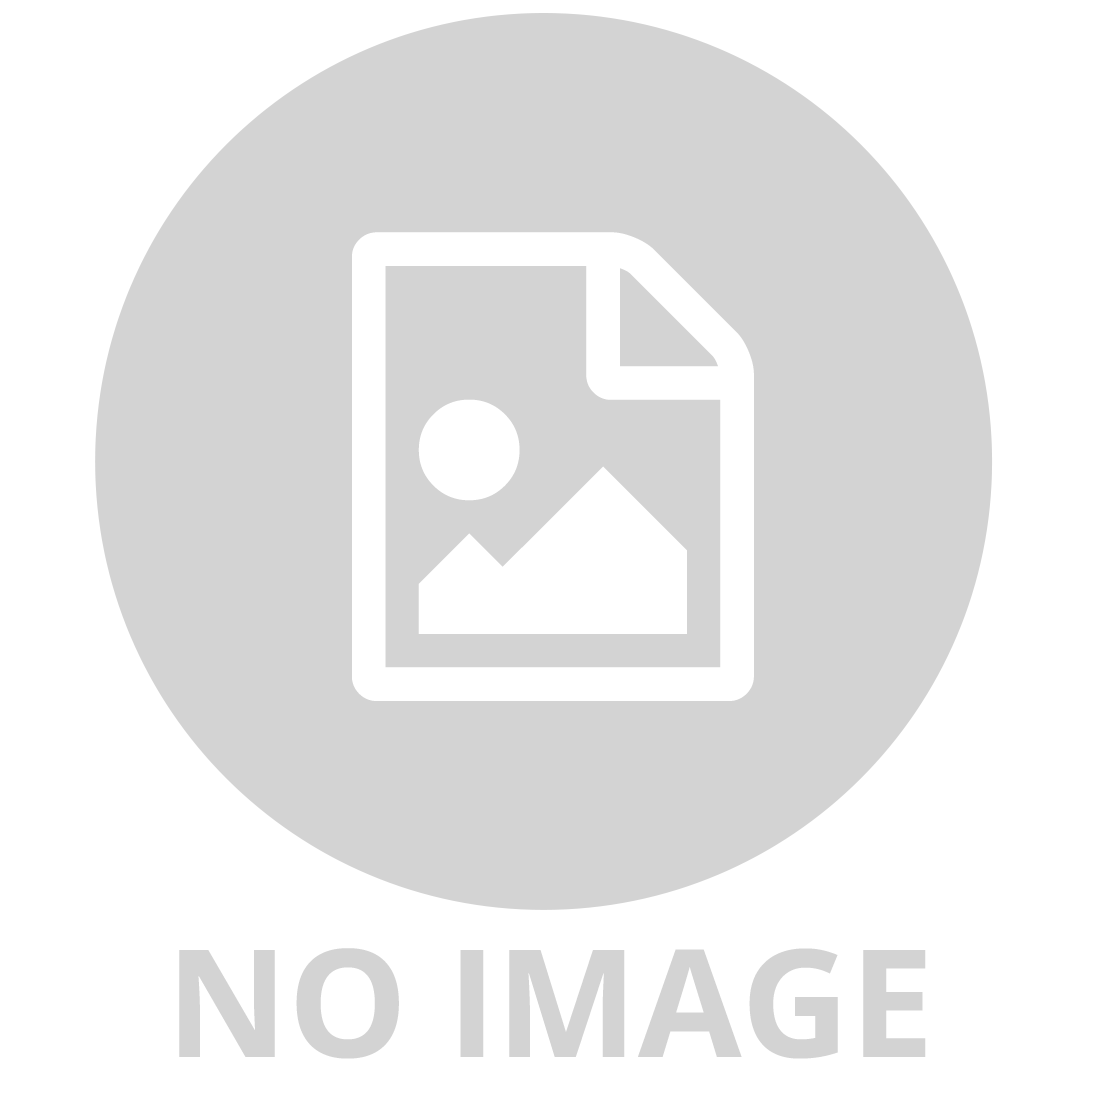 WAHU POOL PARTY POOL QUOITZ